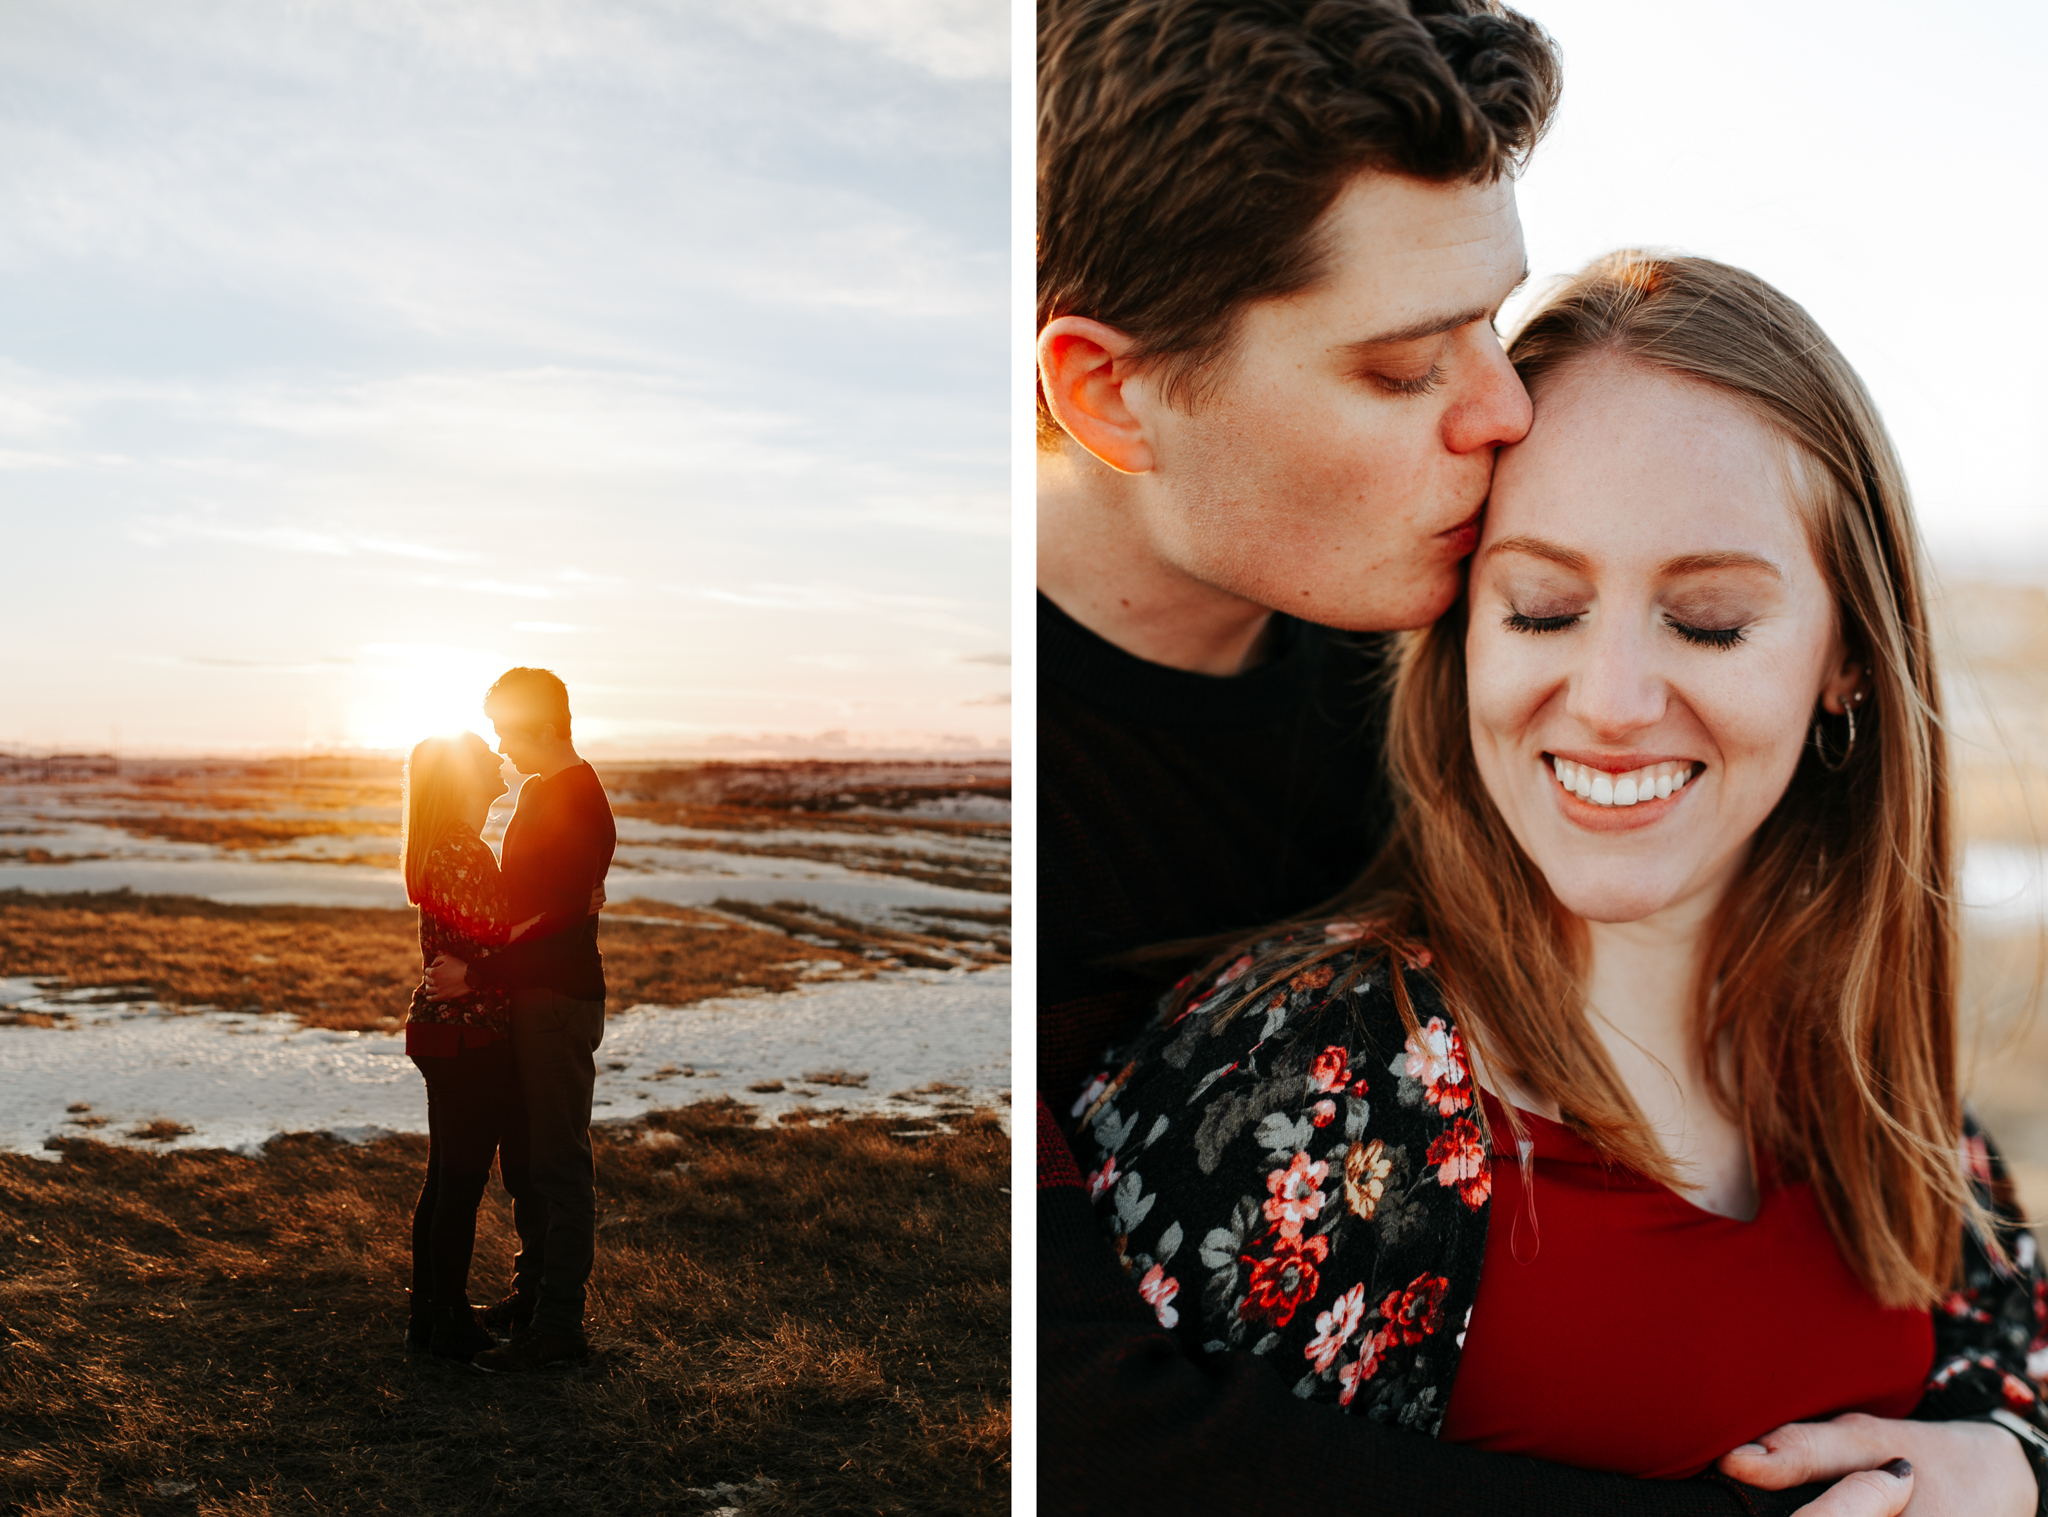 lethbridge-photographer-love-and-be-loved-photography-wedding-engagement-coulees-stuart-lacey-pavan-park-photo-image-picture-77.jpg